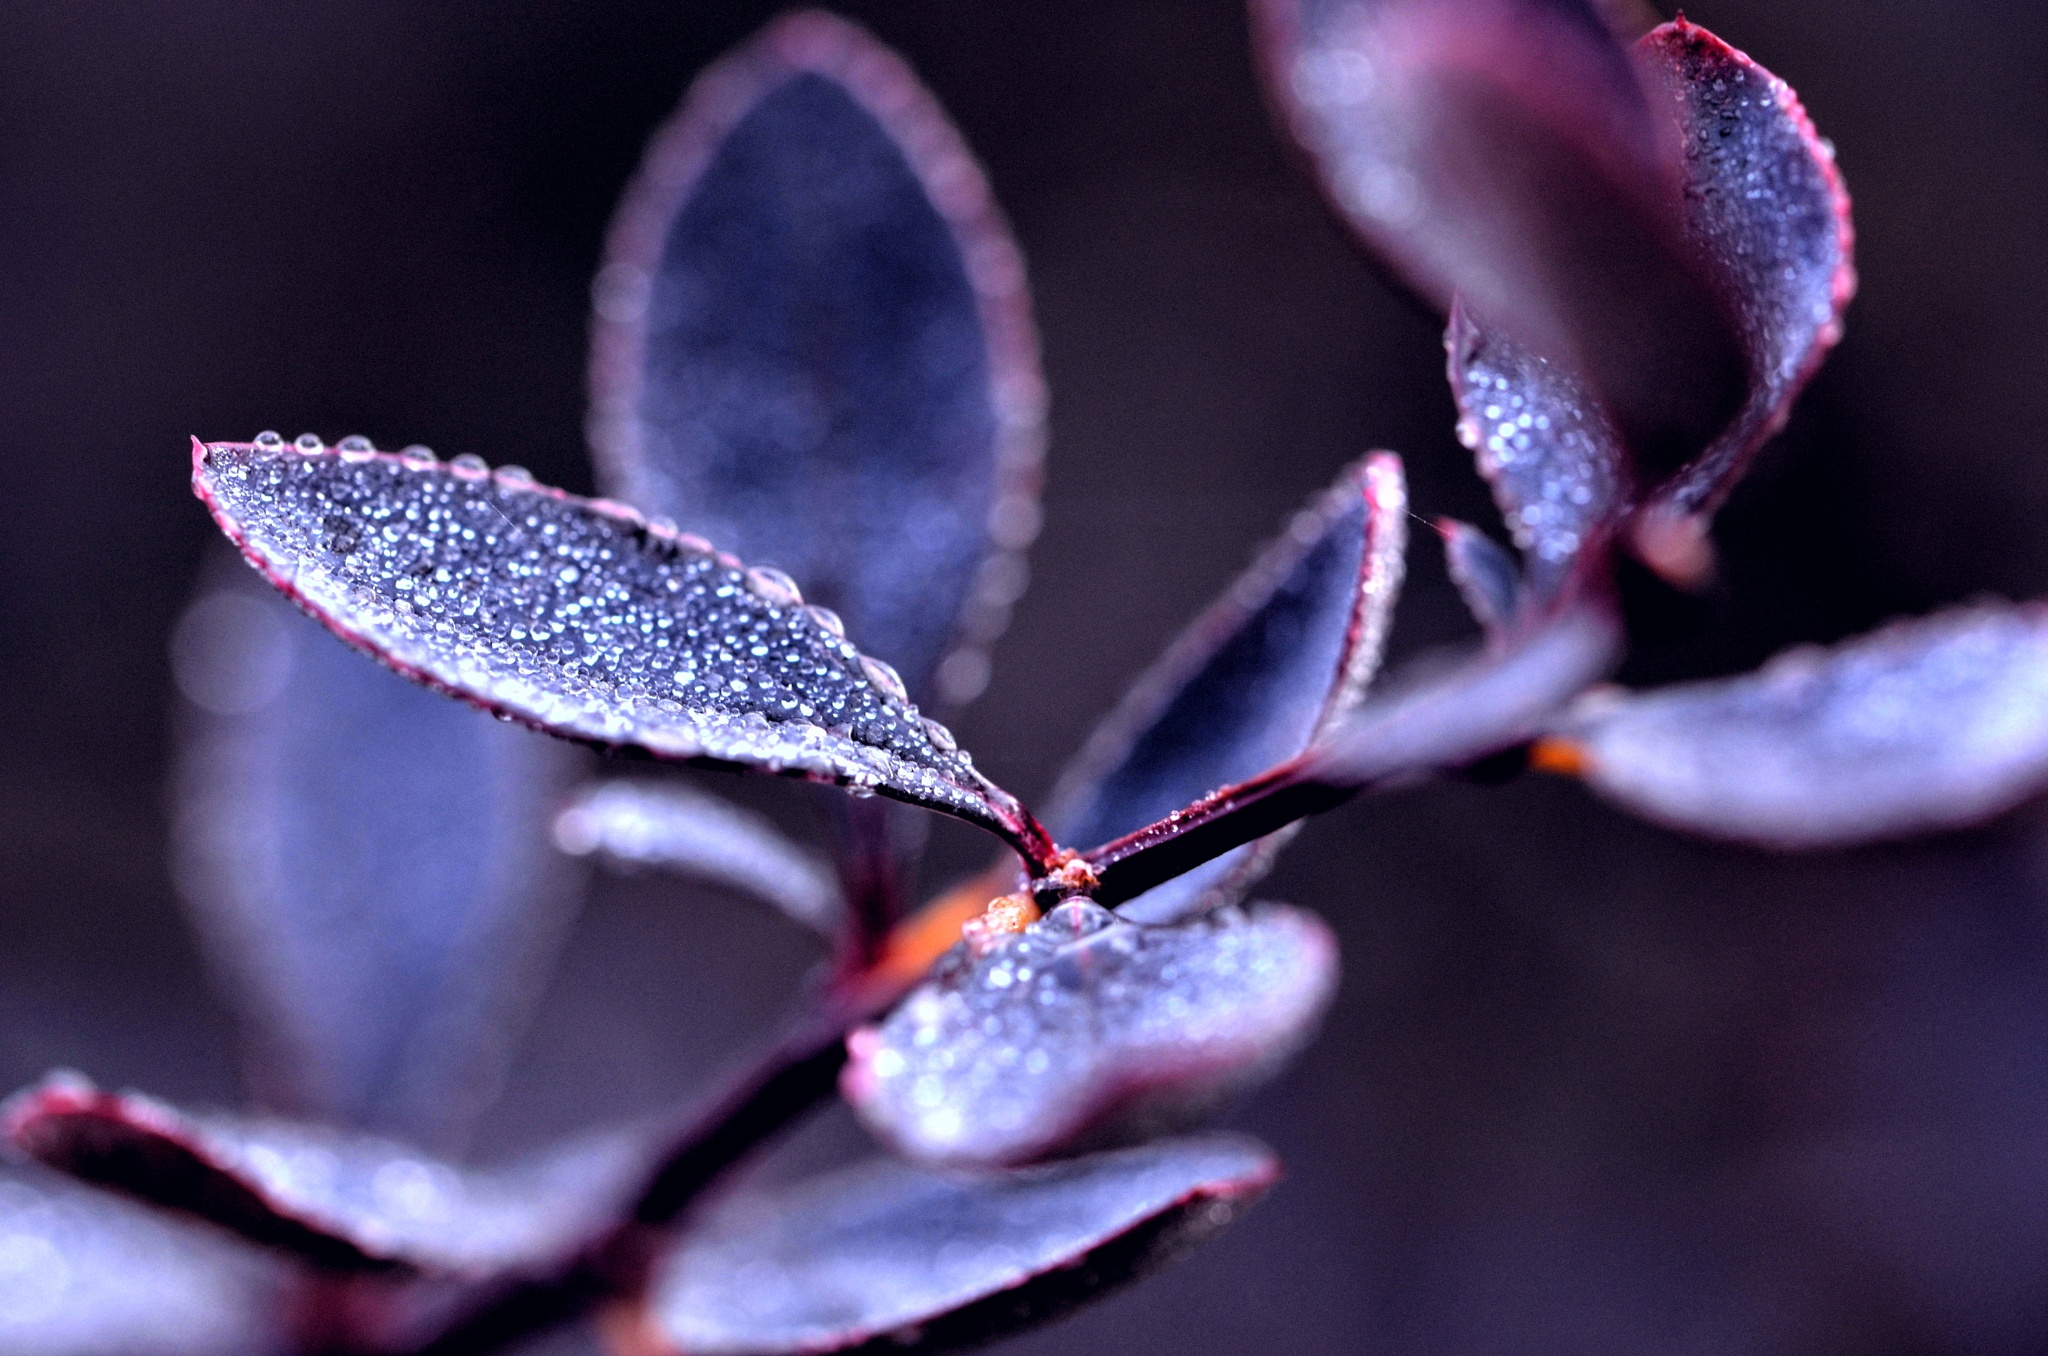 Droplets on leaves by Bernard Guillon